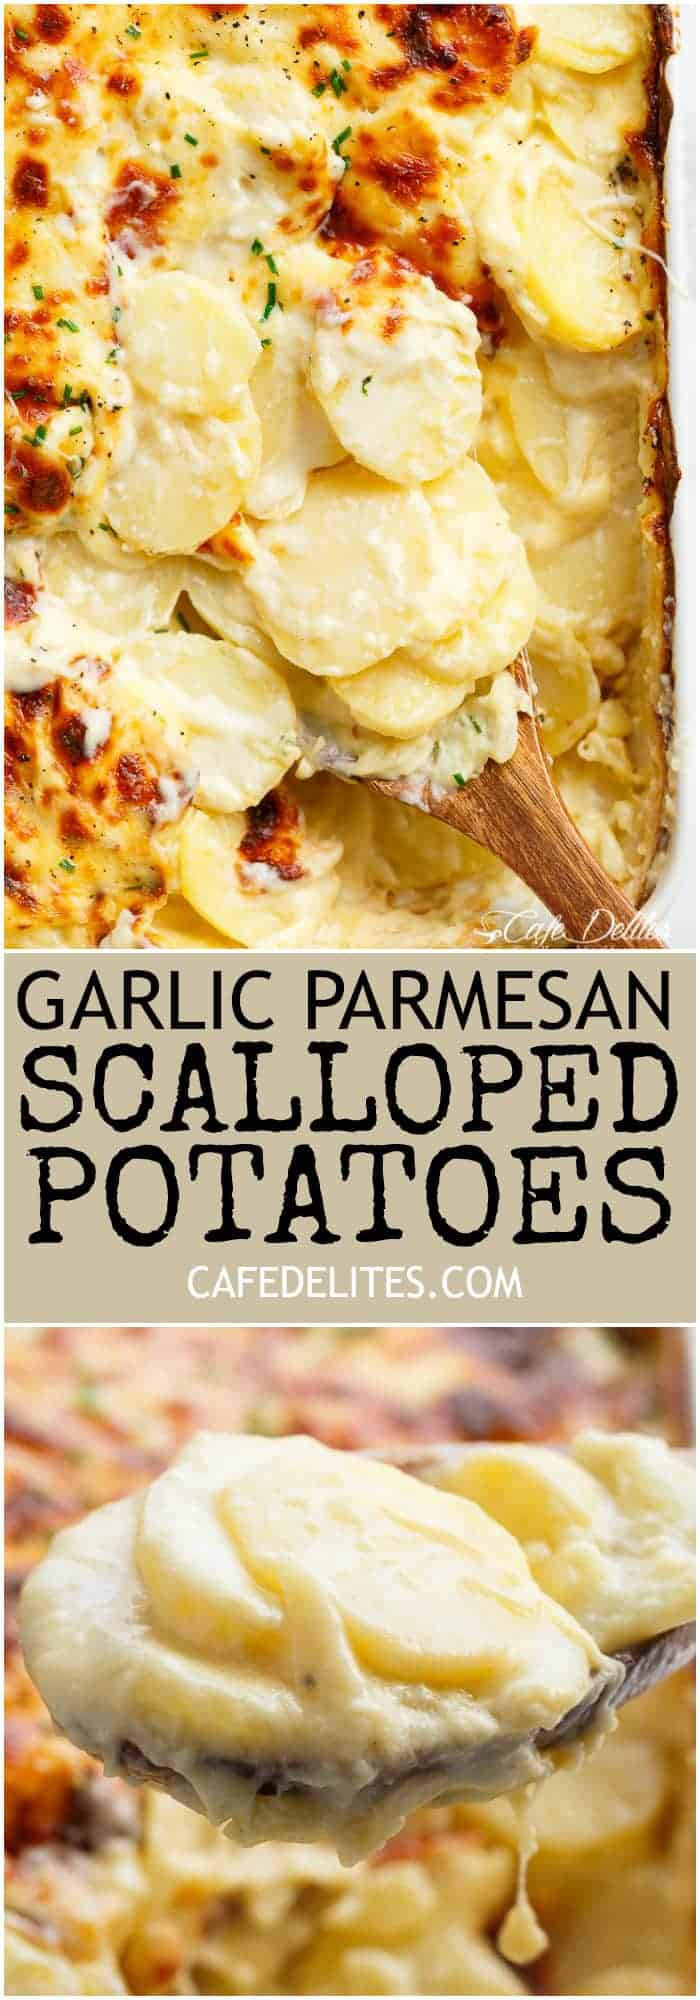 Garlic Parmesan Scalloped Potatoes Layered In A Creamy Garlic Sauce With Parmesan And Mozzarella Is The